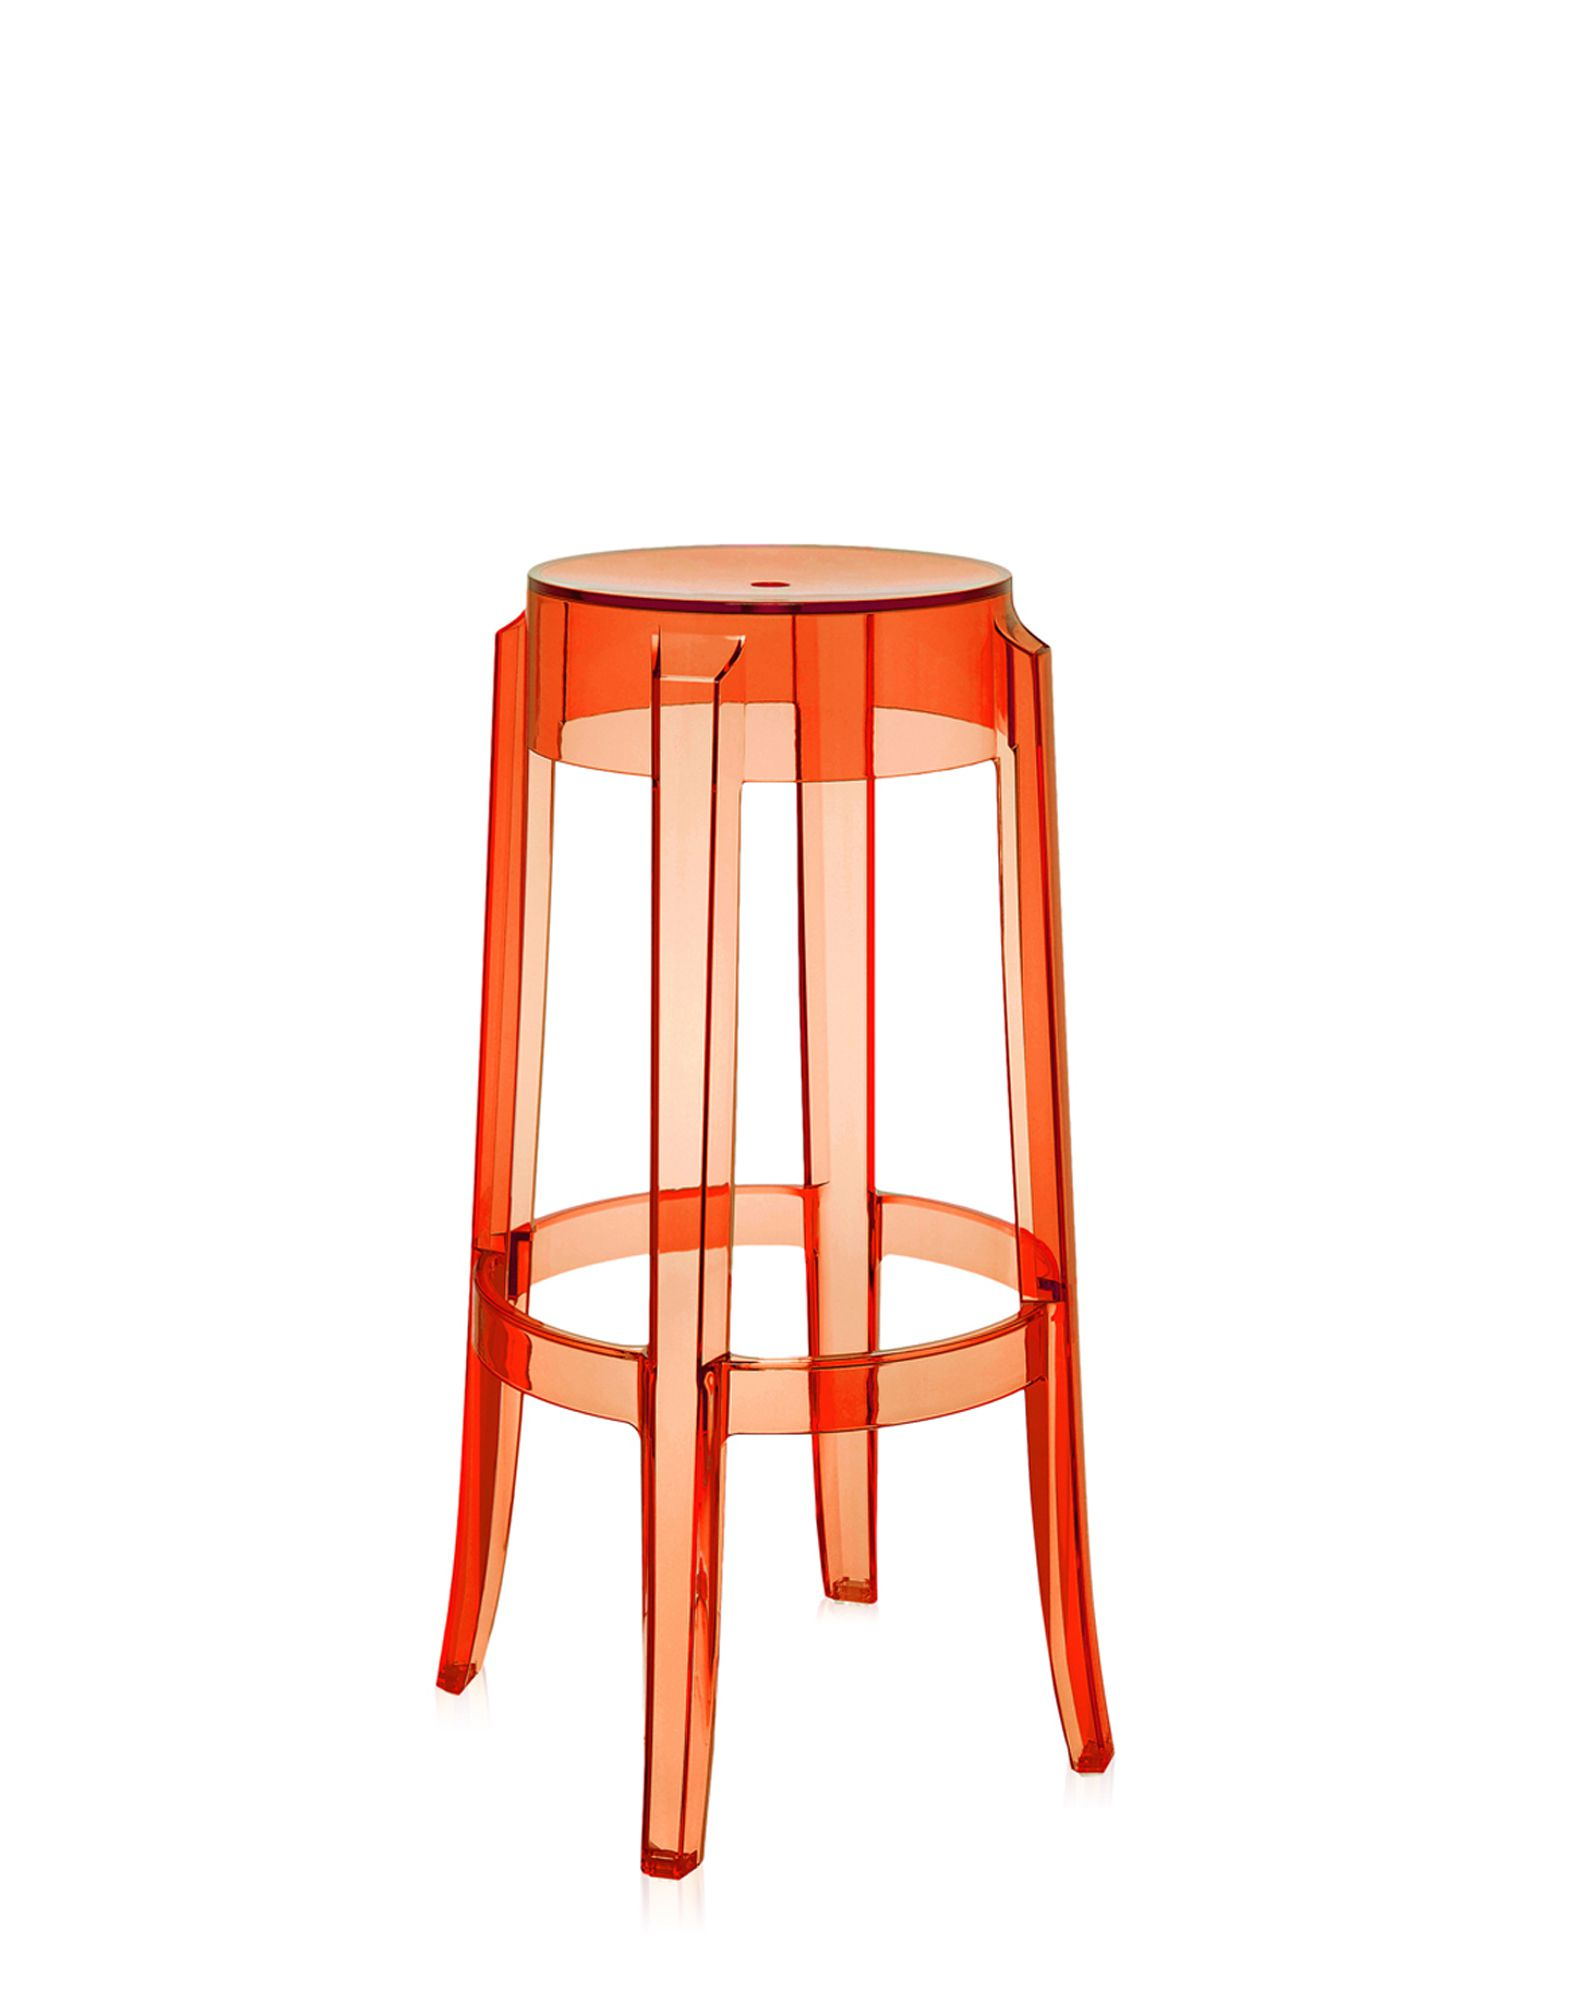 Stool Charles Ghost Orange Clear H 75 cm